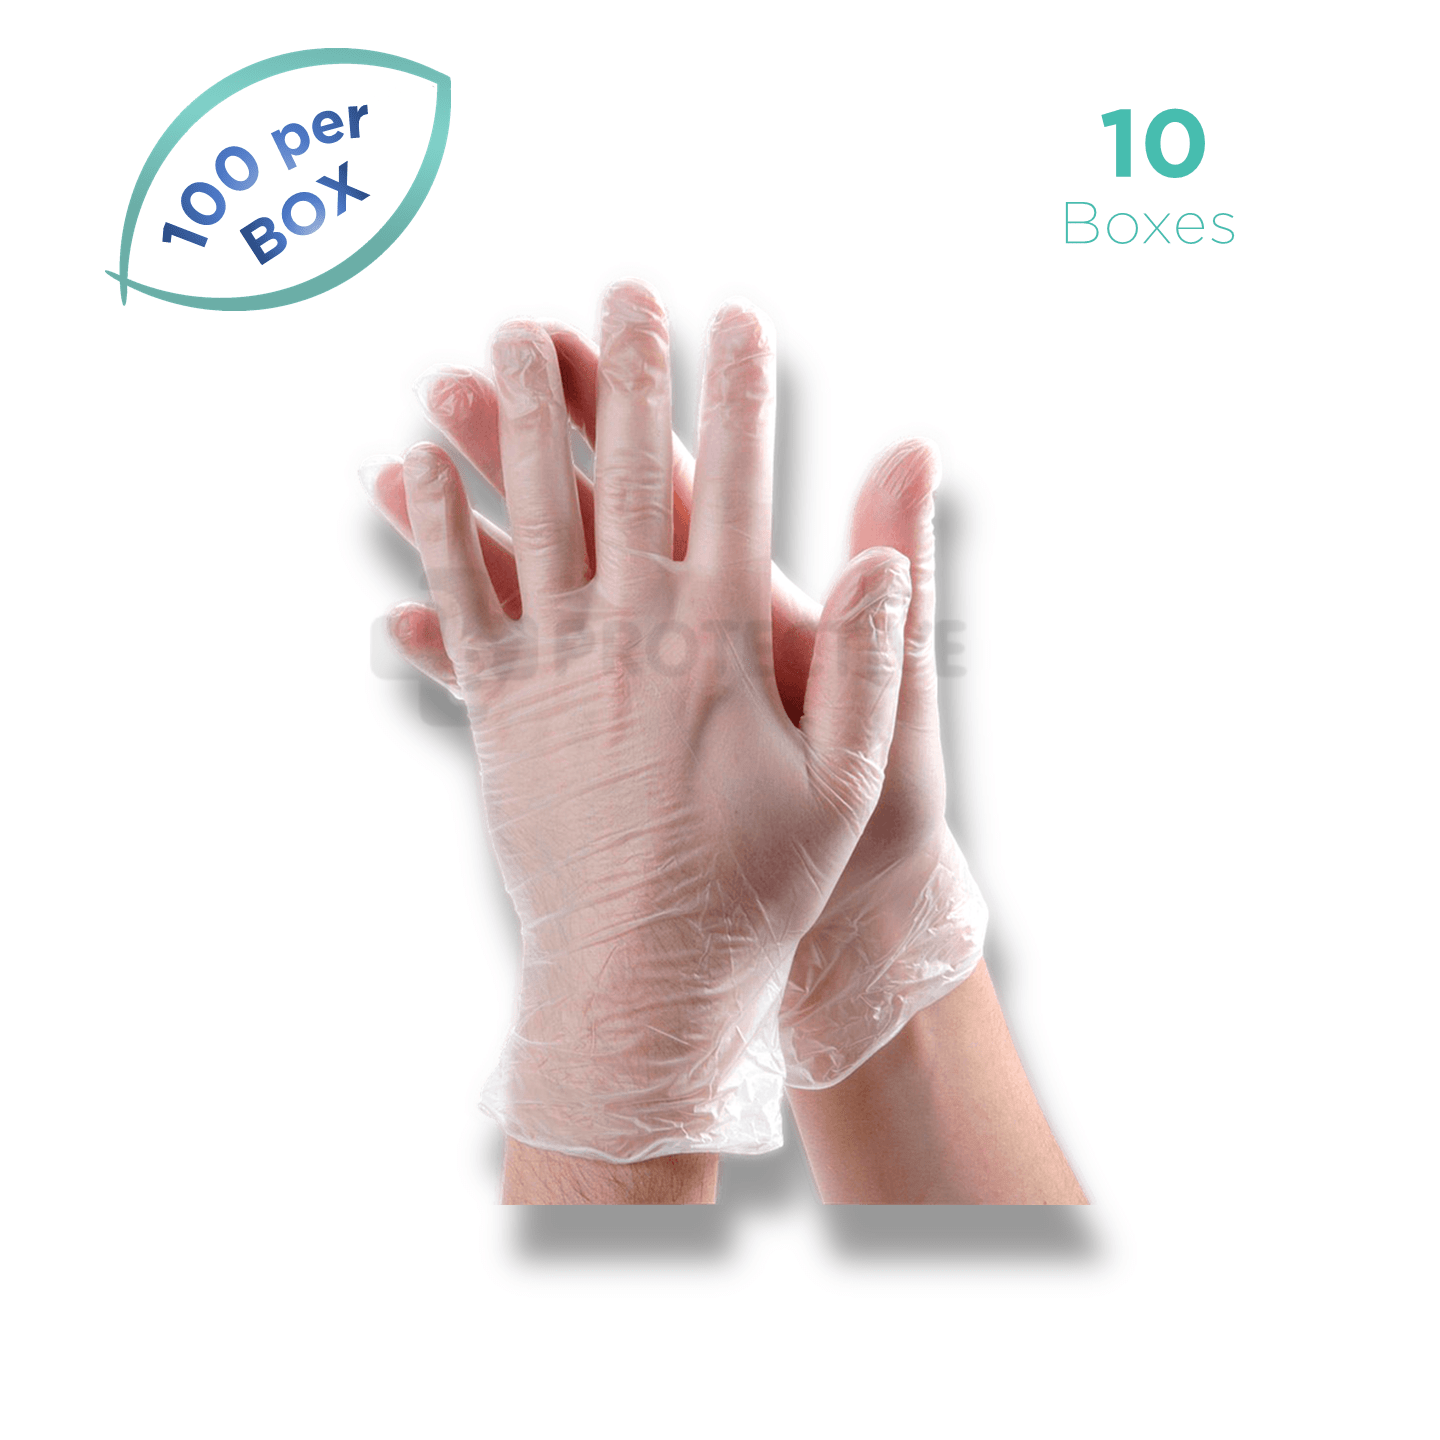 Vinyl Examination Gloves - Pack of 1,000. - USA Medical Supply - DB Protective